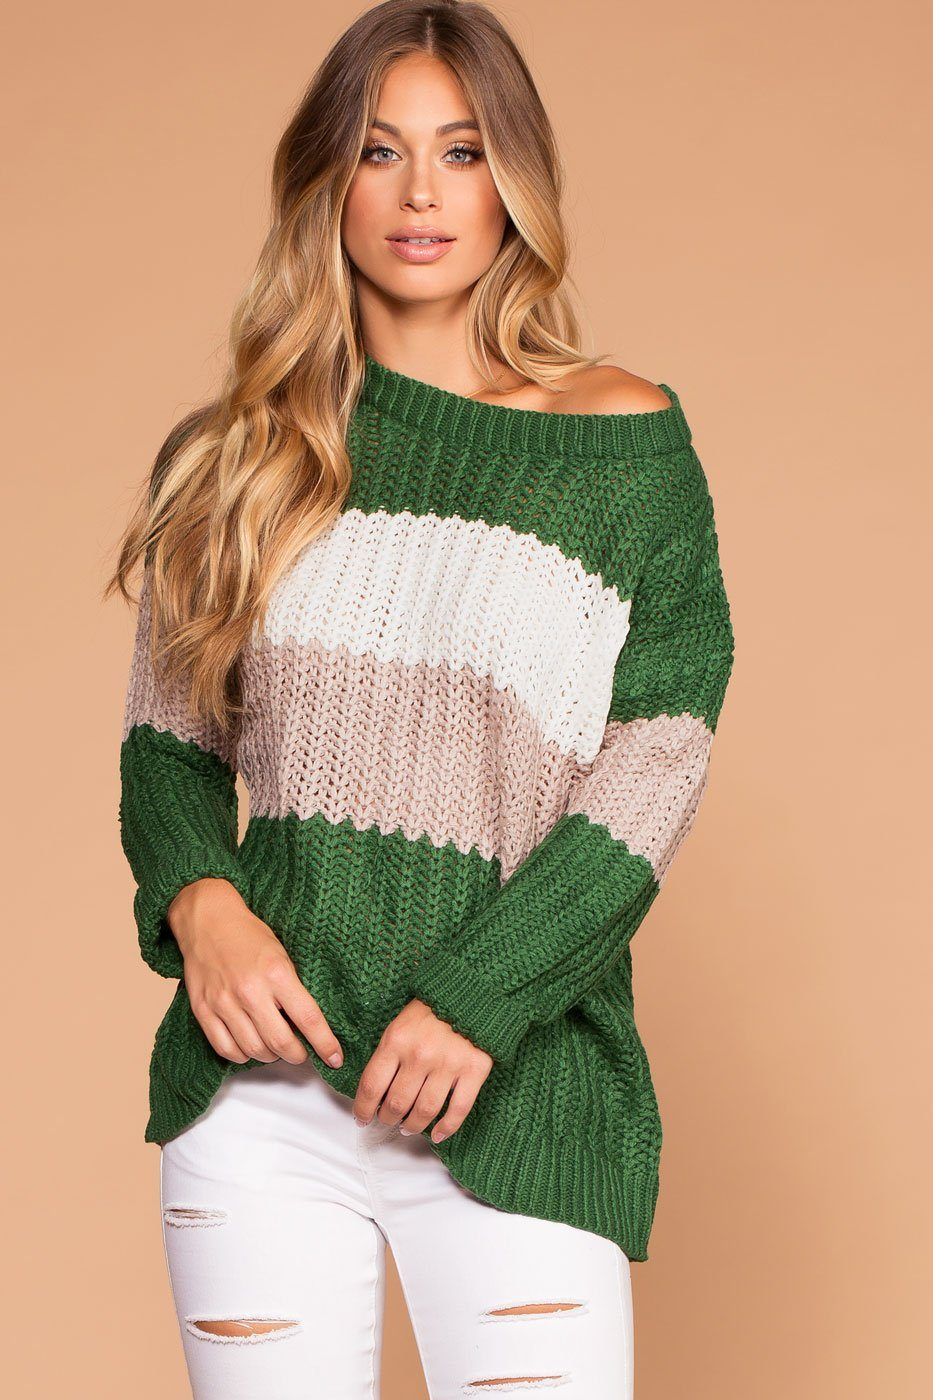 Nostalgic Green Oversize Colorblock Knit Sweater | Shop Priceless